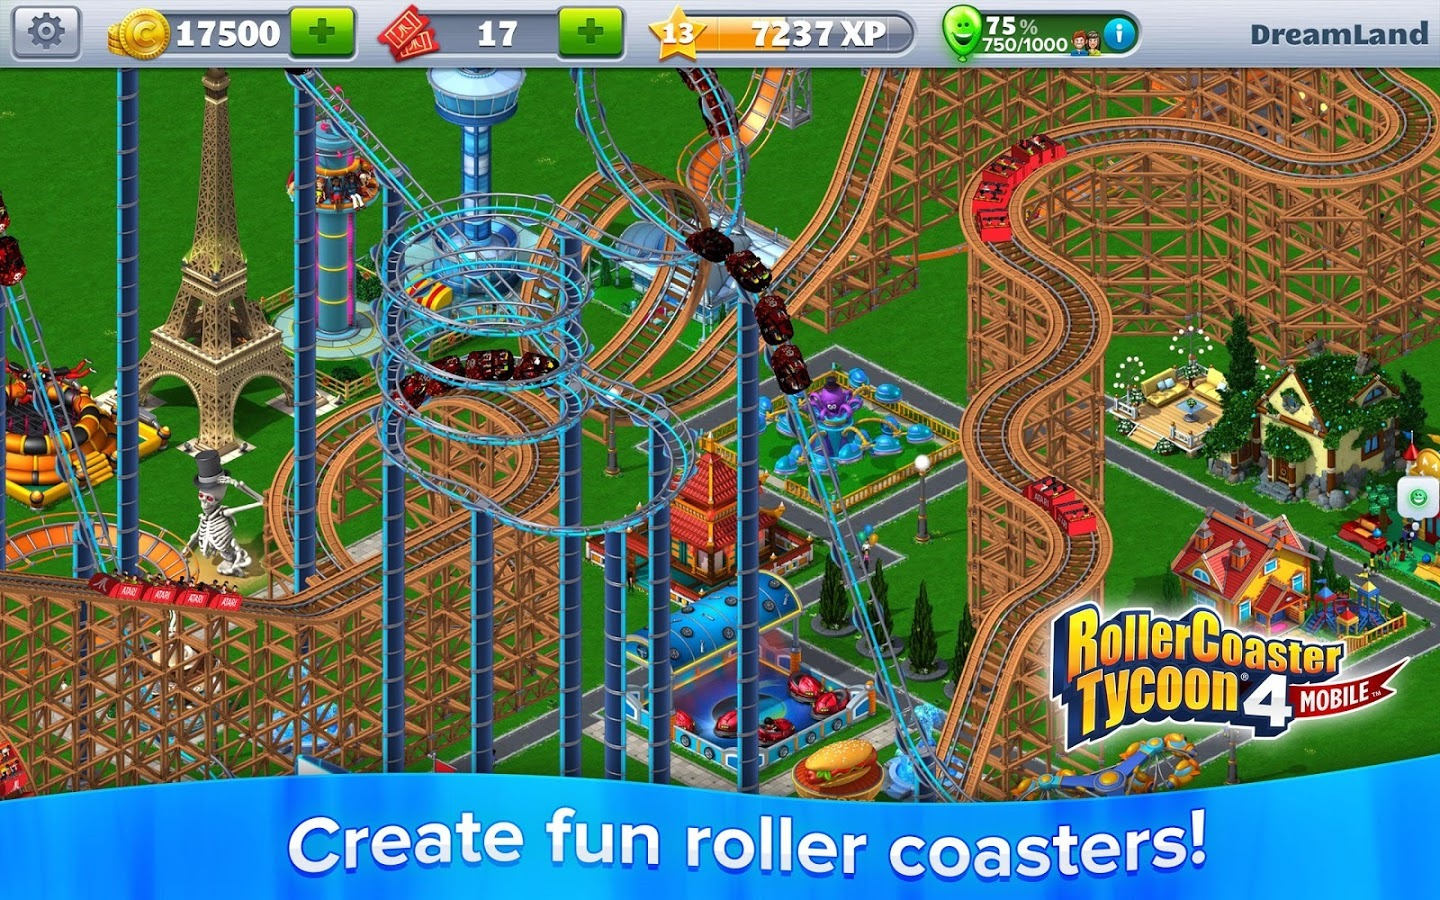 RollerCoaster Tycoon 4 Mobile Mixes Classic Game Mechanics